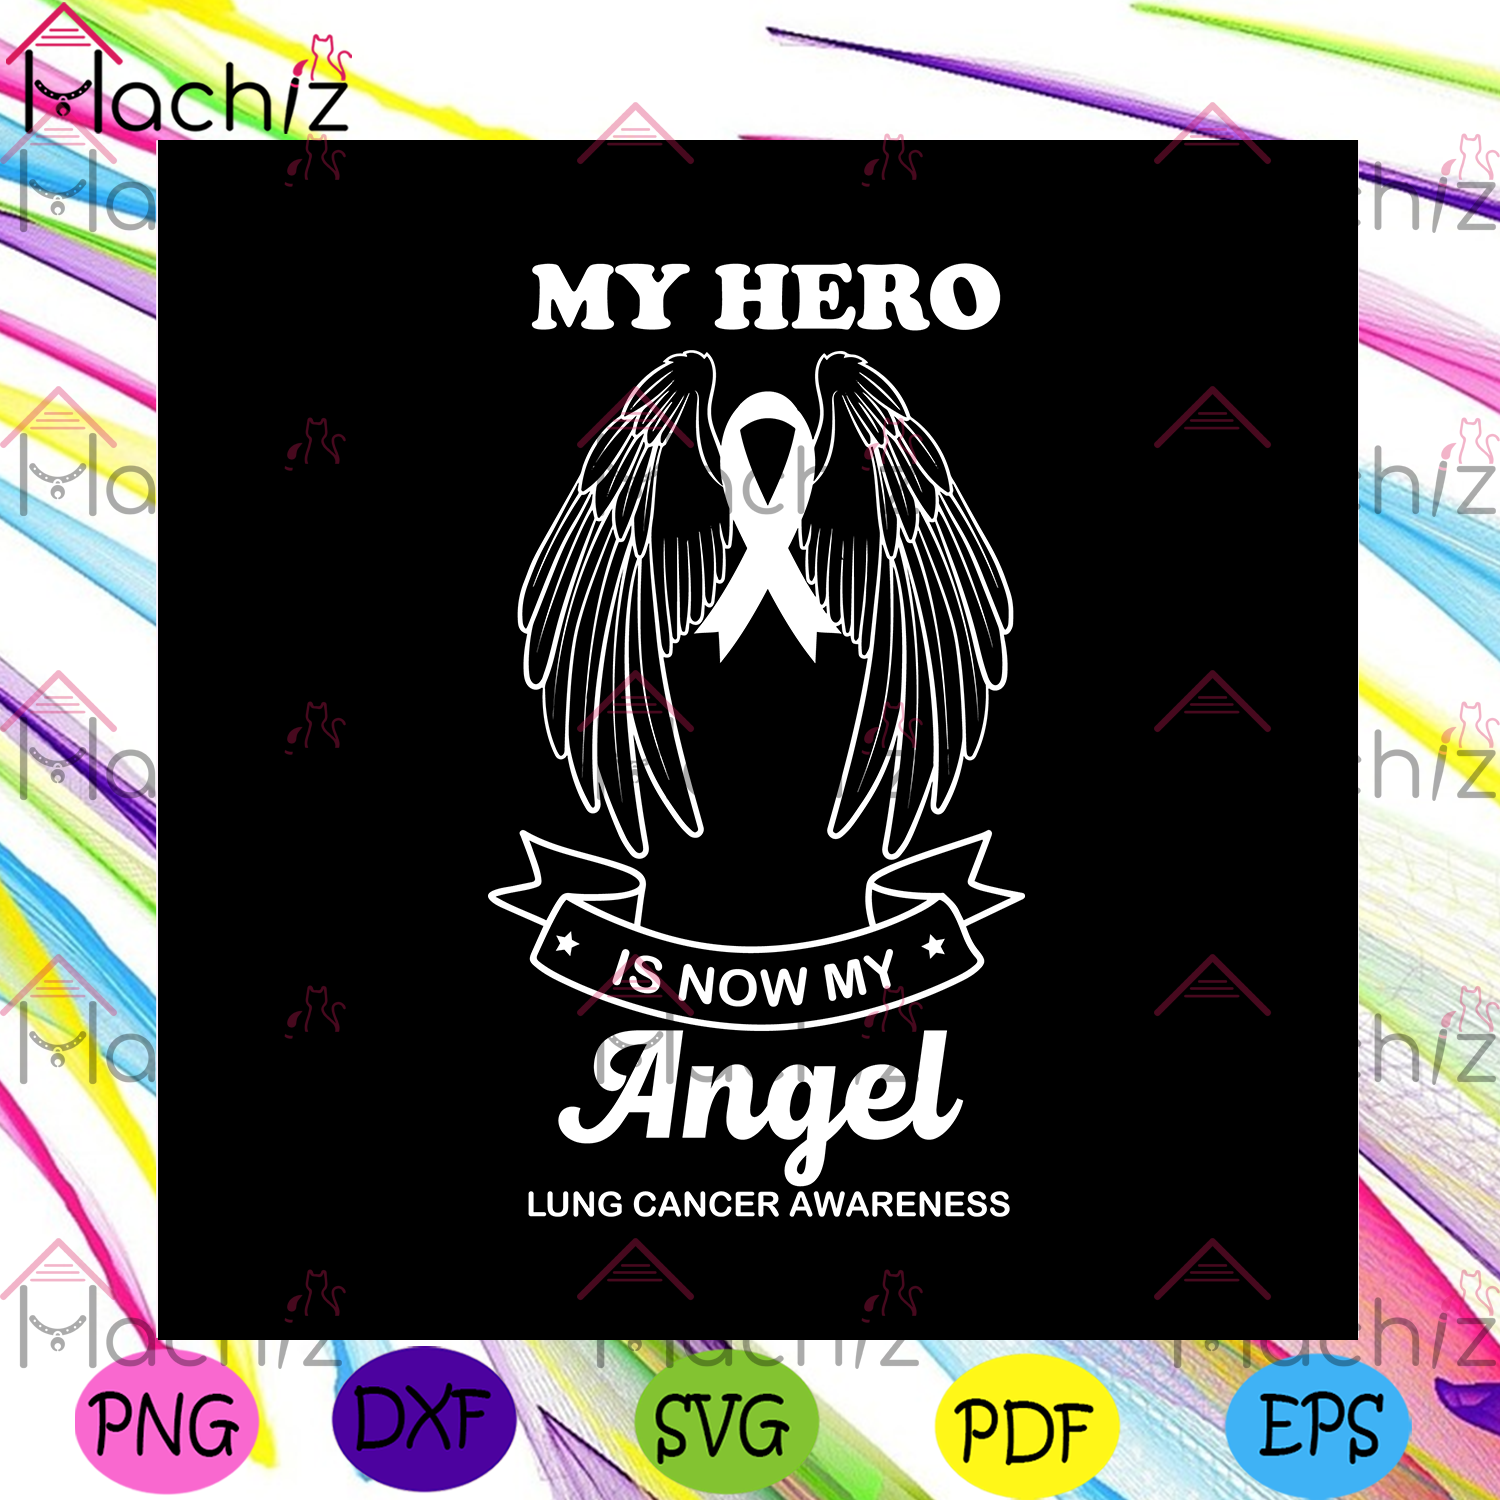 My hero is now my angel lung cancer awareness svg trending svg